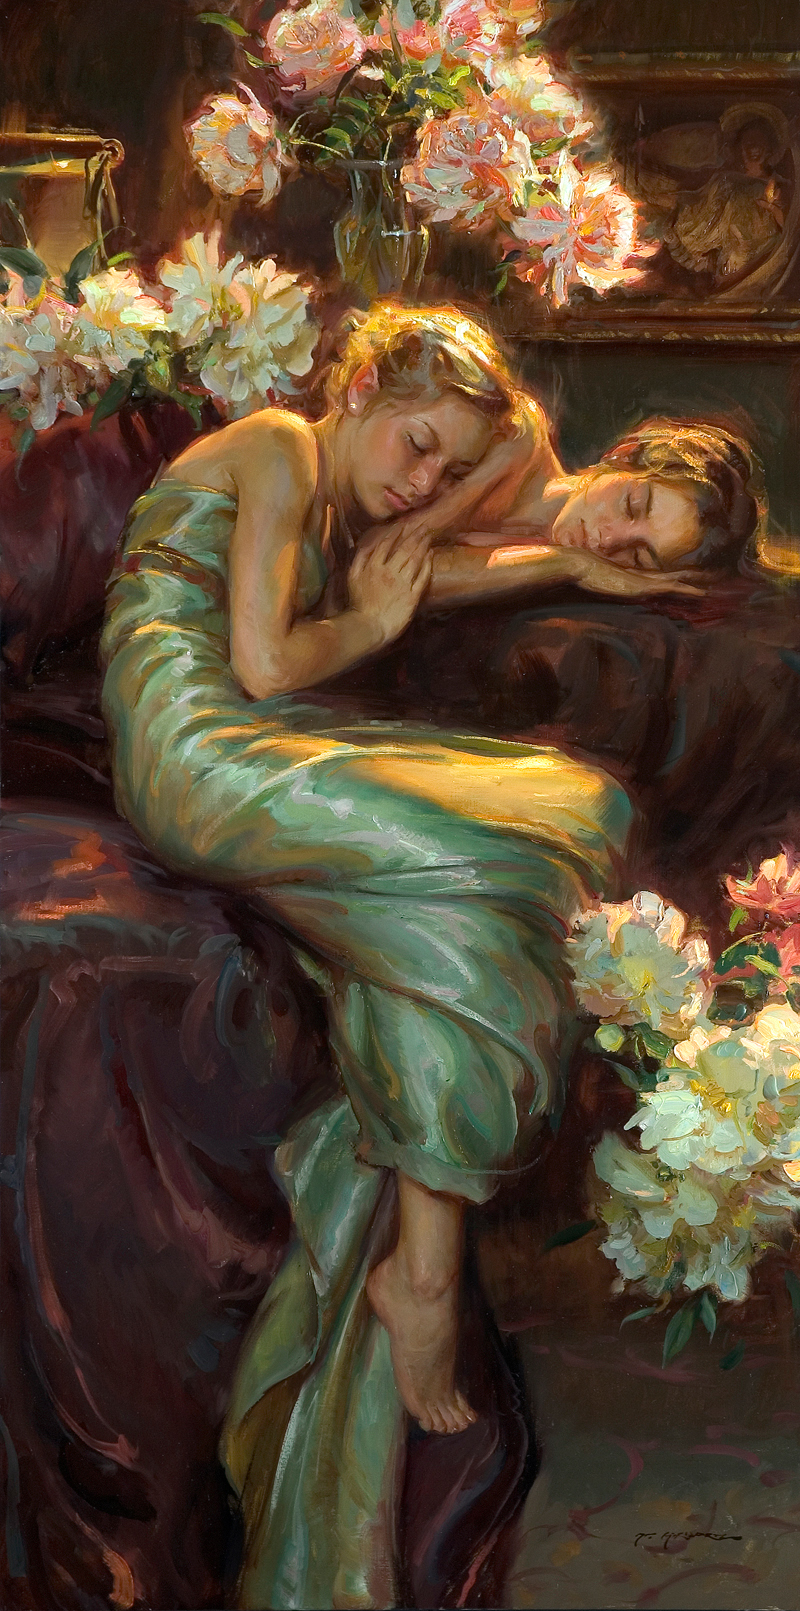 356-Daniel-Gerhartz_Midsummer's-Night_72x36_oil-on-canvas_nfs.jpg